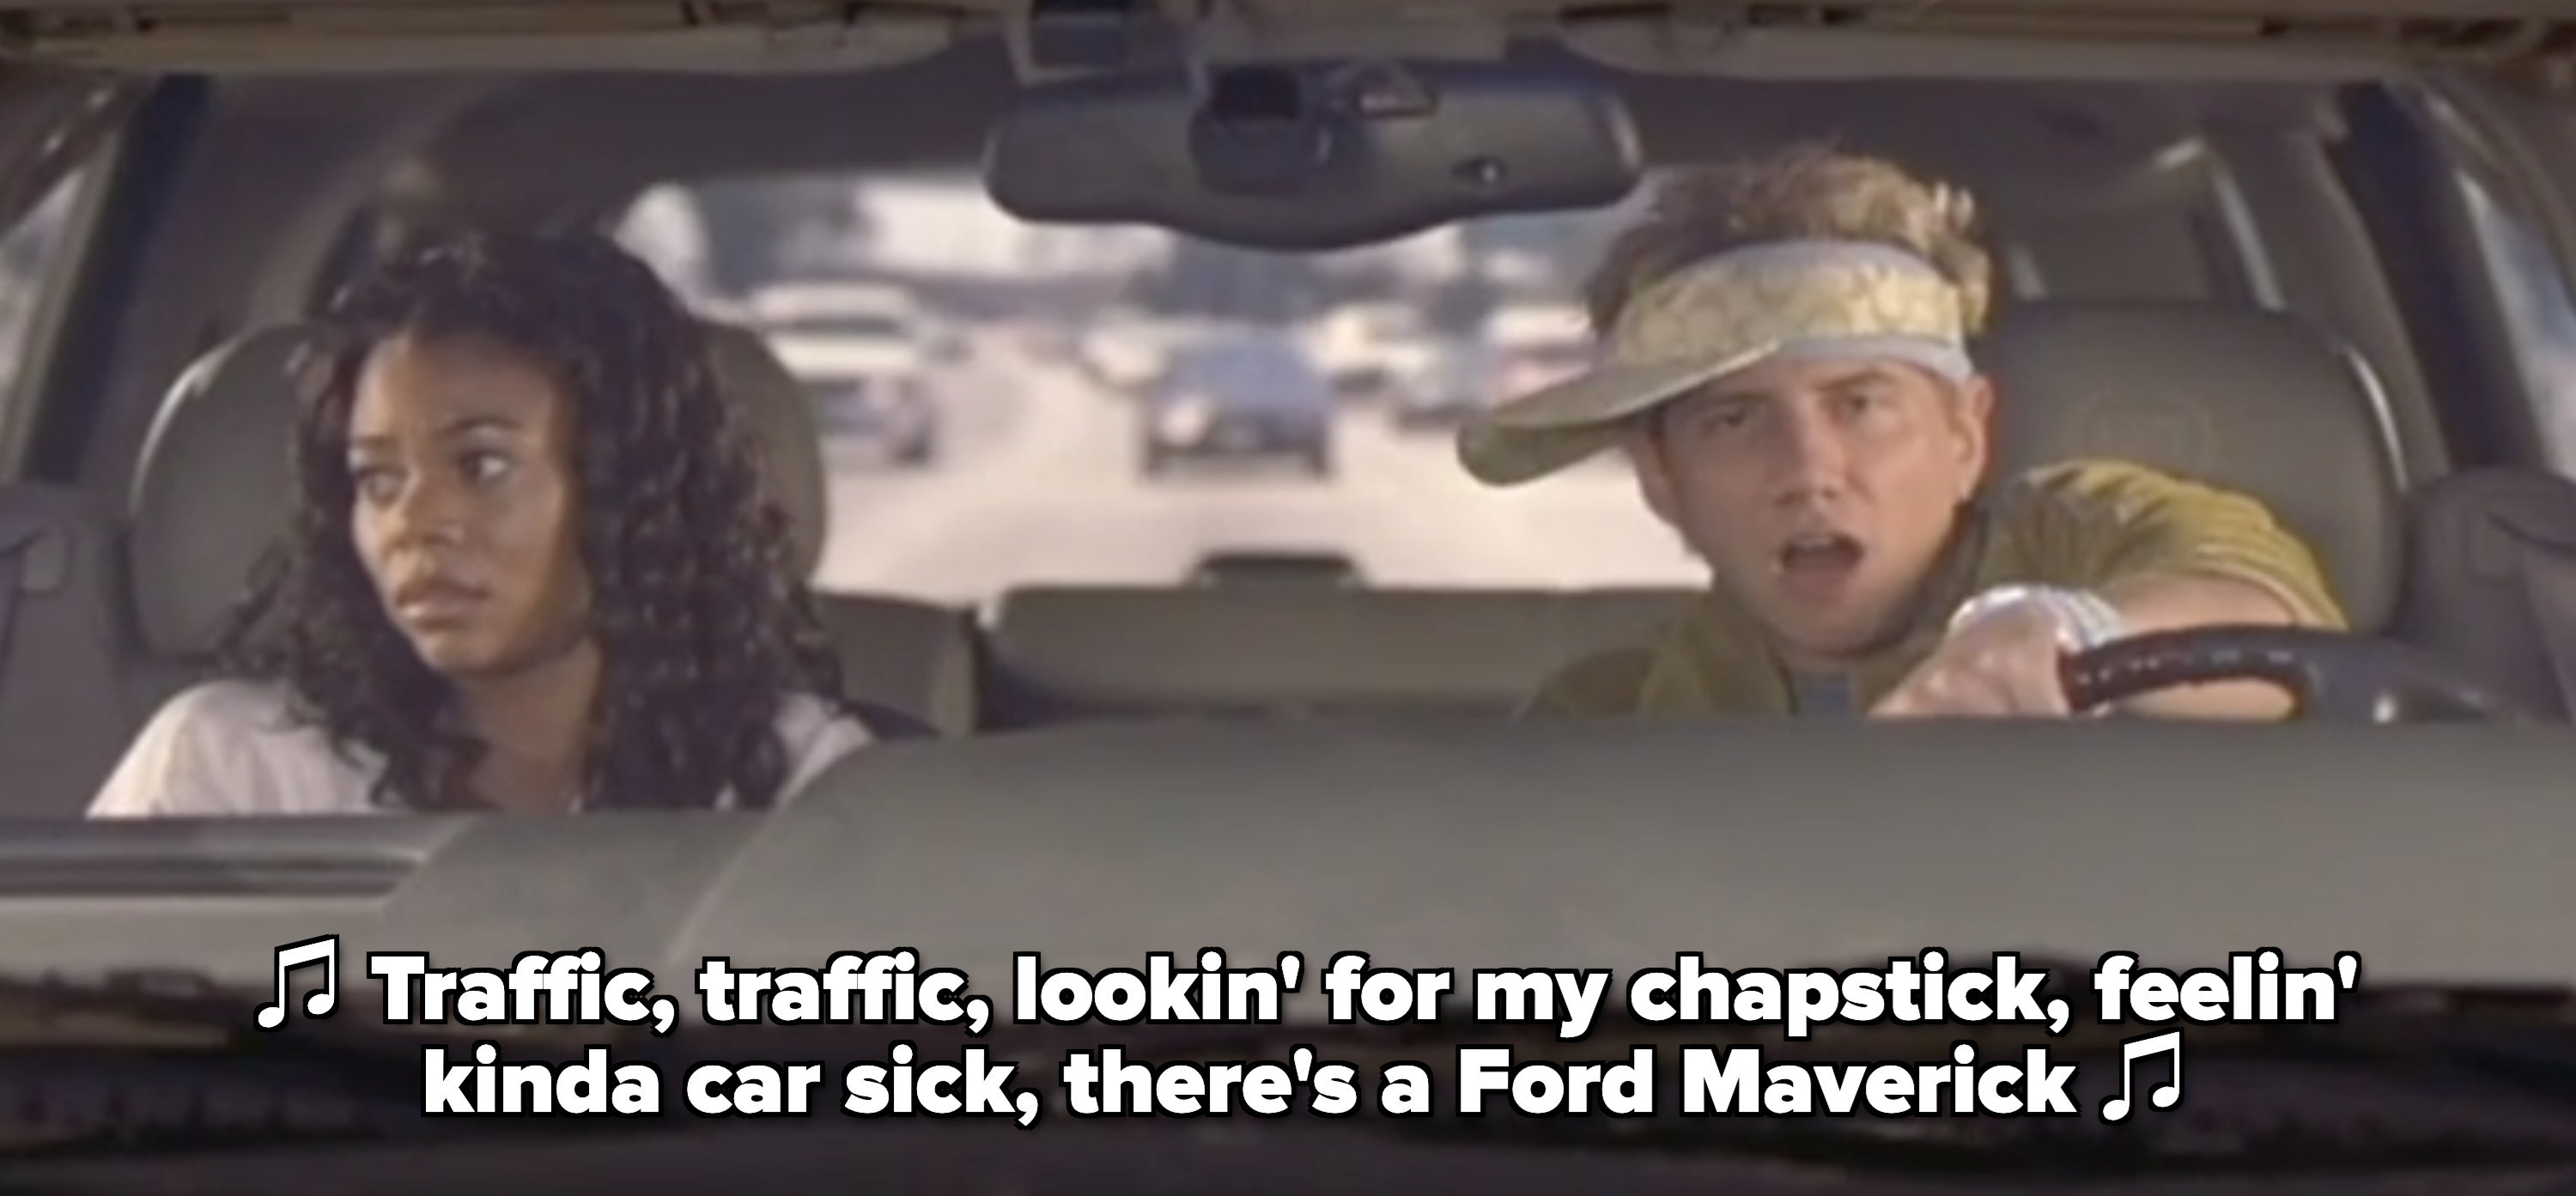 """Brad rapping in the car: """"Traffic, traffic, lookin' for my chapstick, feelin' kinda car sick, there's a Ford Maverick"""" while Shondra sits in the passenger seat, looking annoyed"""